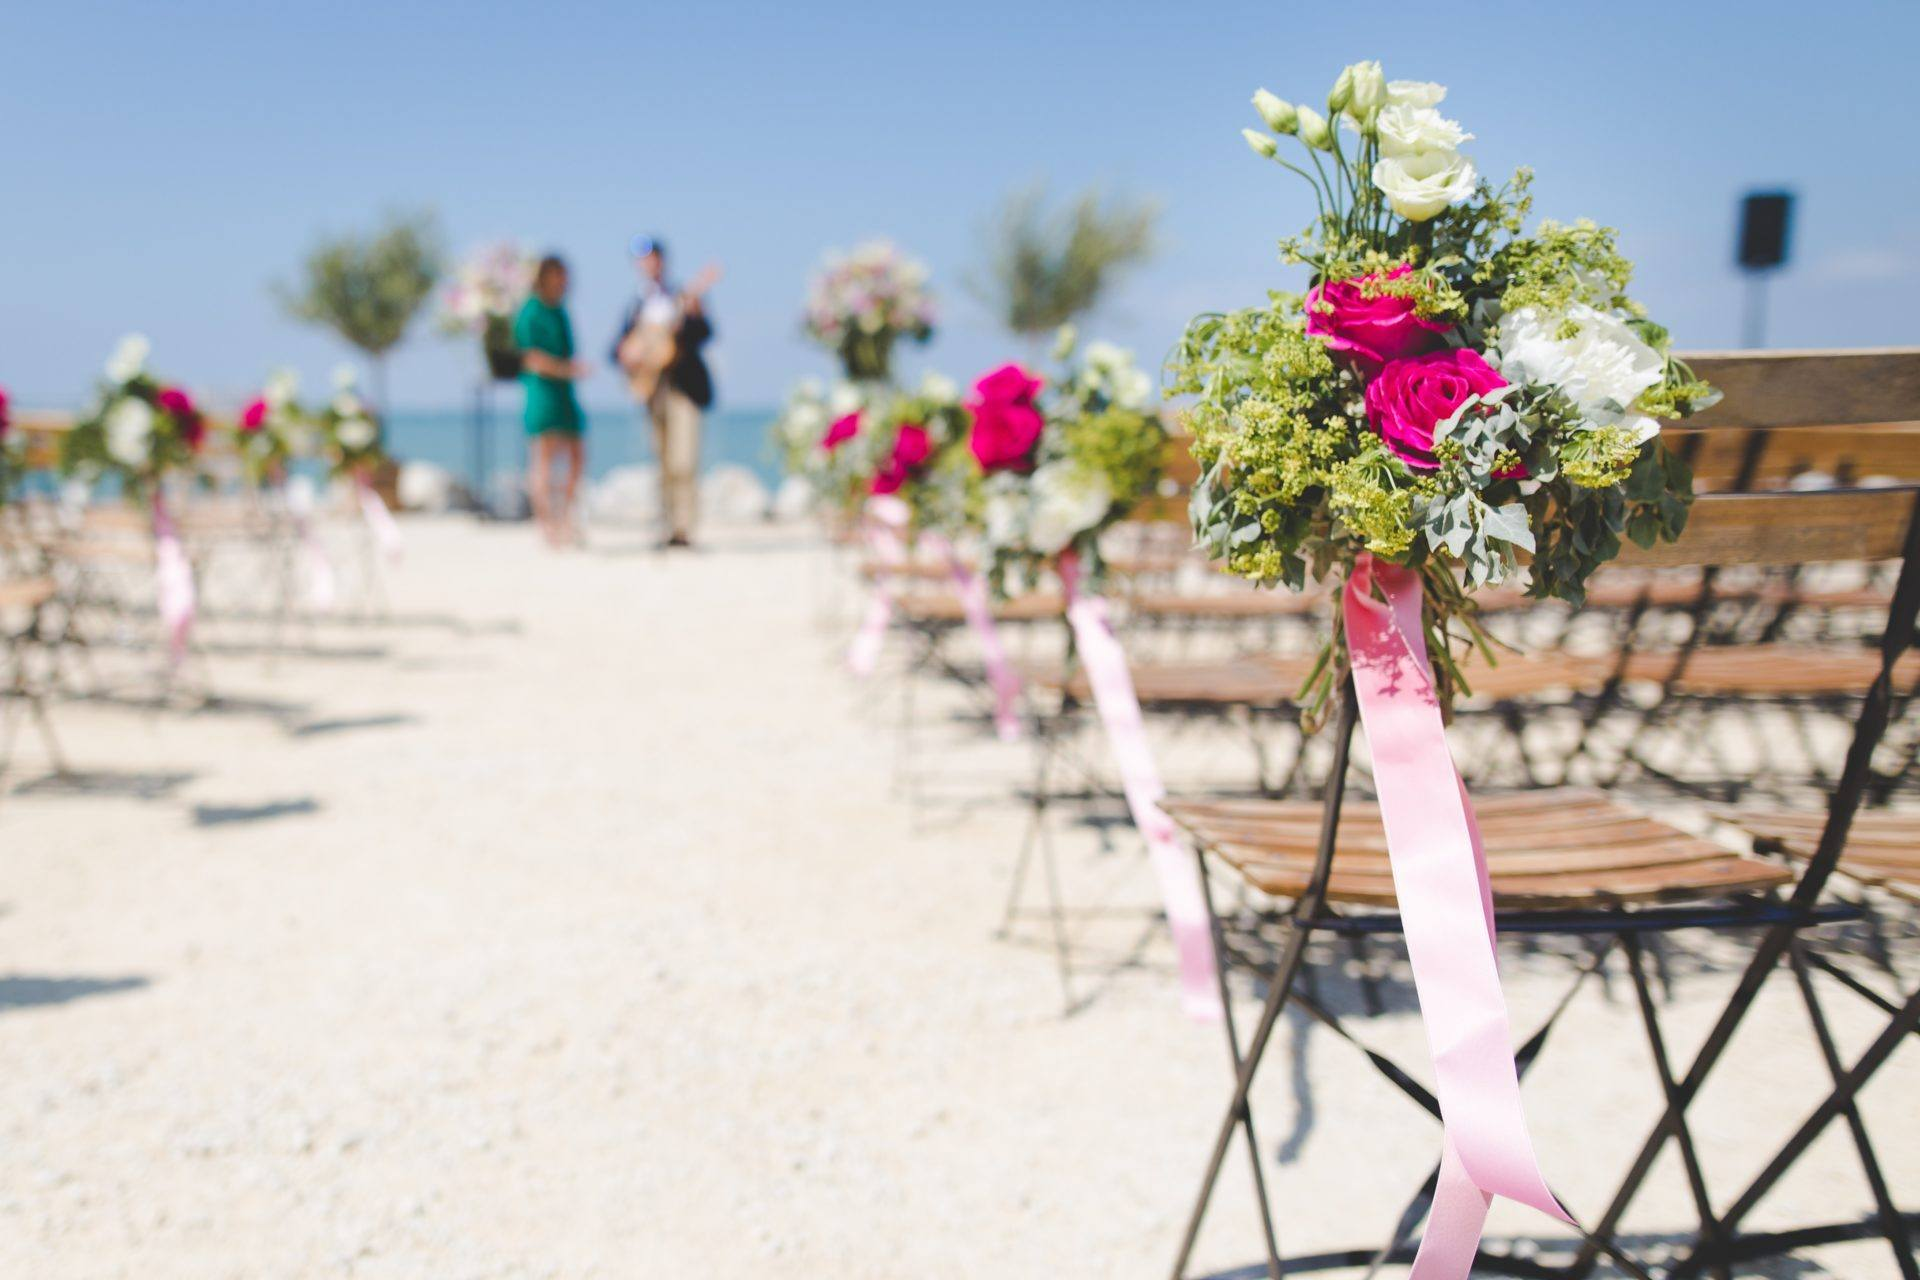 Destination wedding etiquette 101 flowers on guest chairs at beach wedding junglespirit Image collections